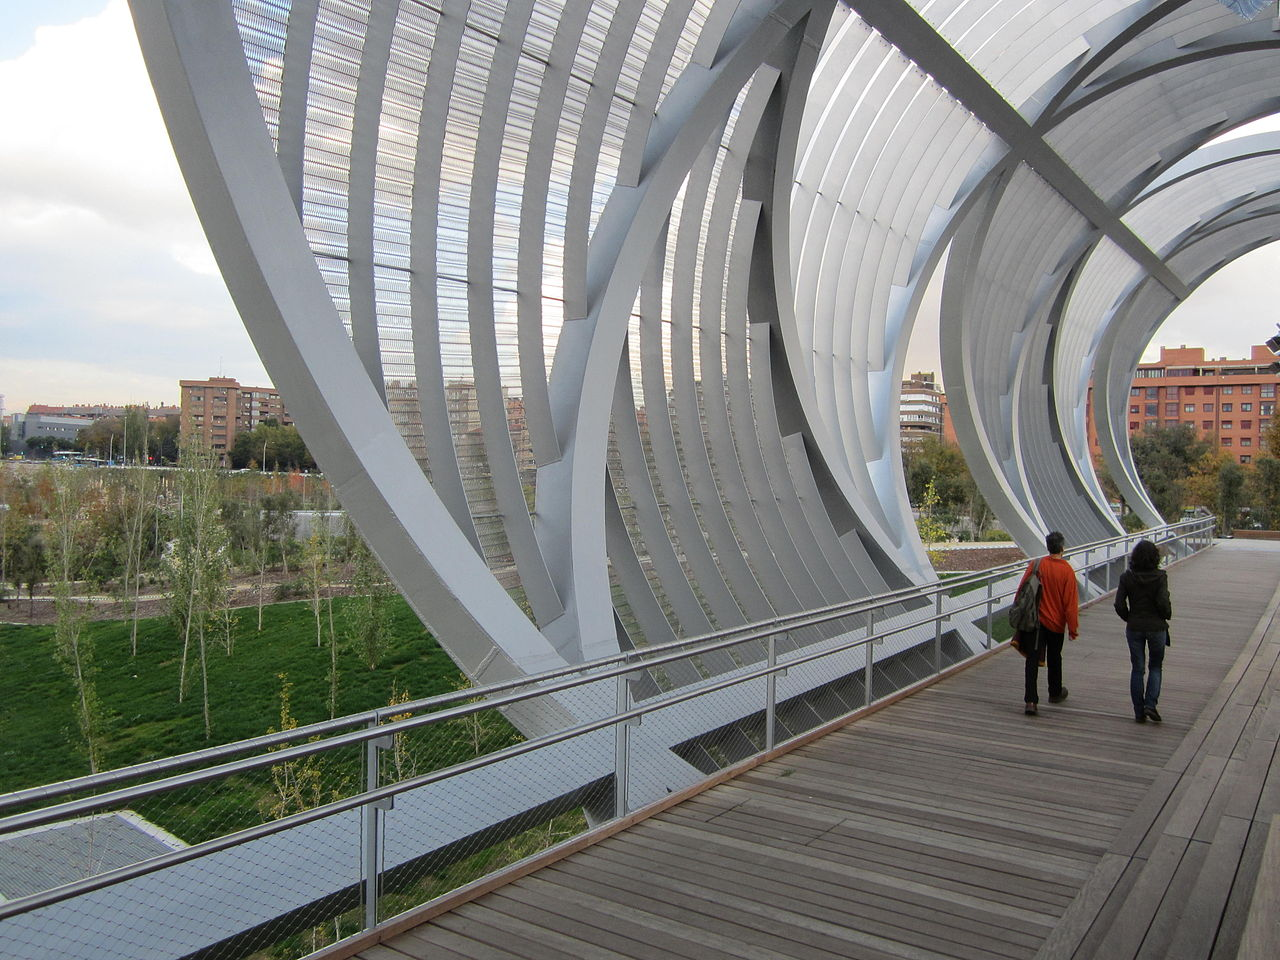 filedesign pedestrian bridge 6382211259jpg